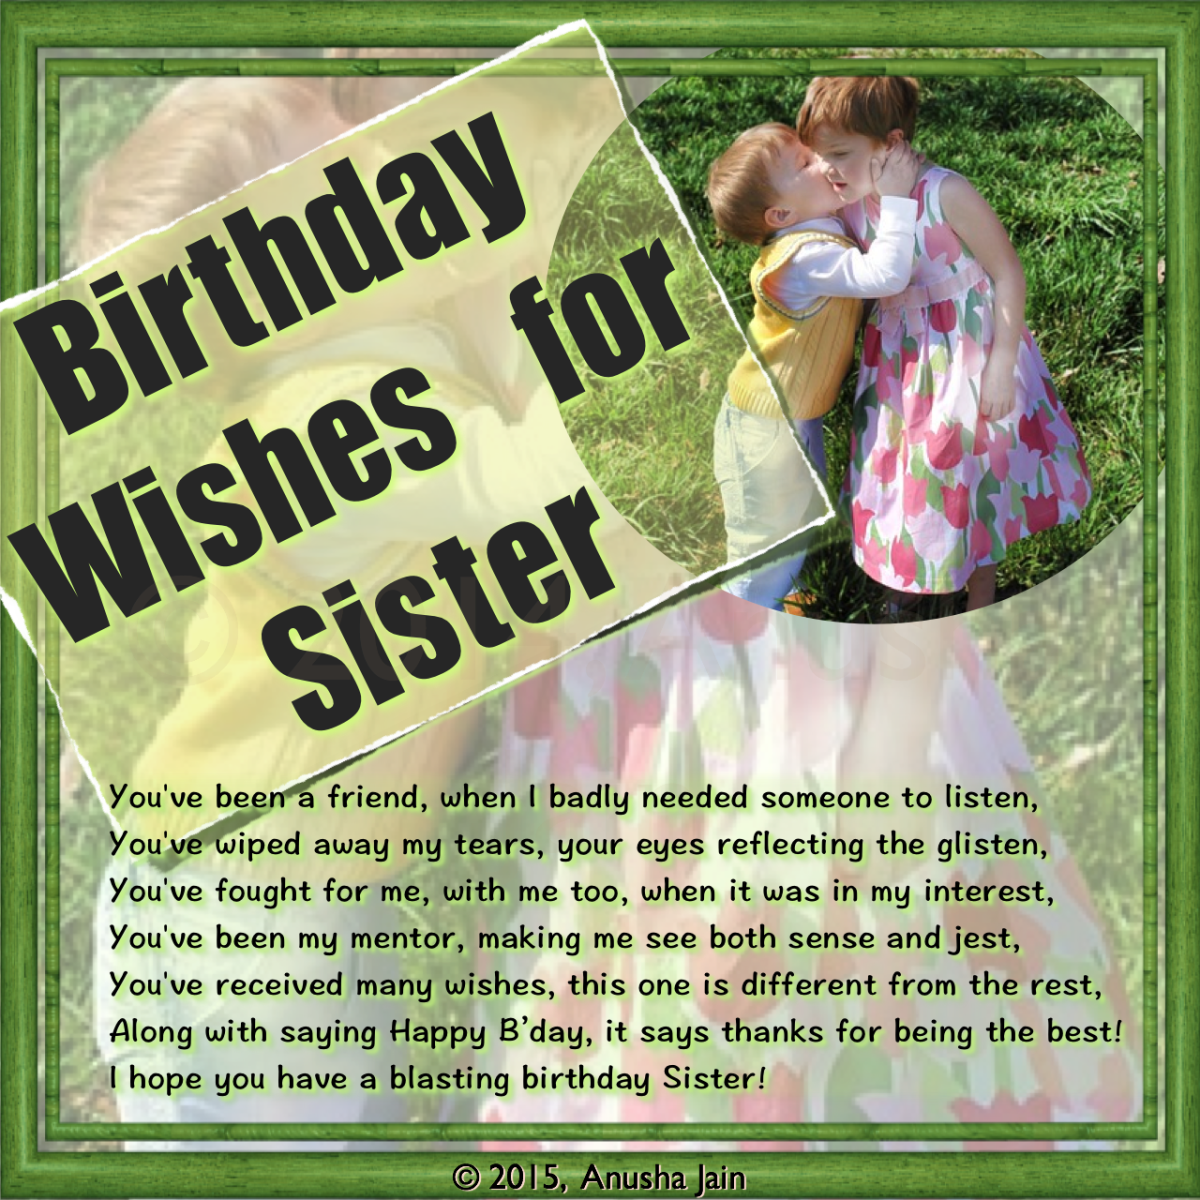 Thanks for being the best dear sister! Happy B'day!!